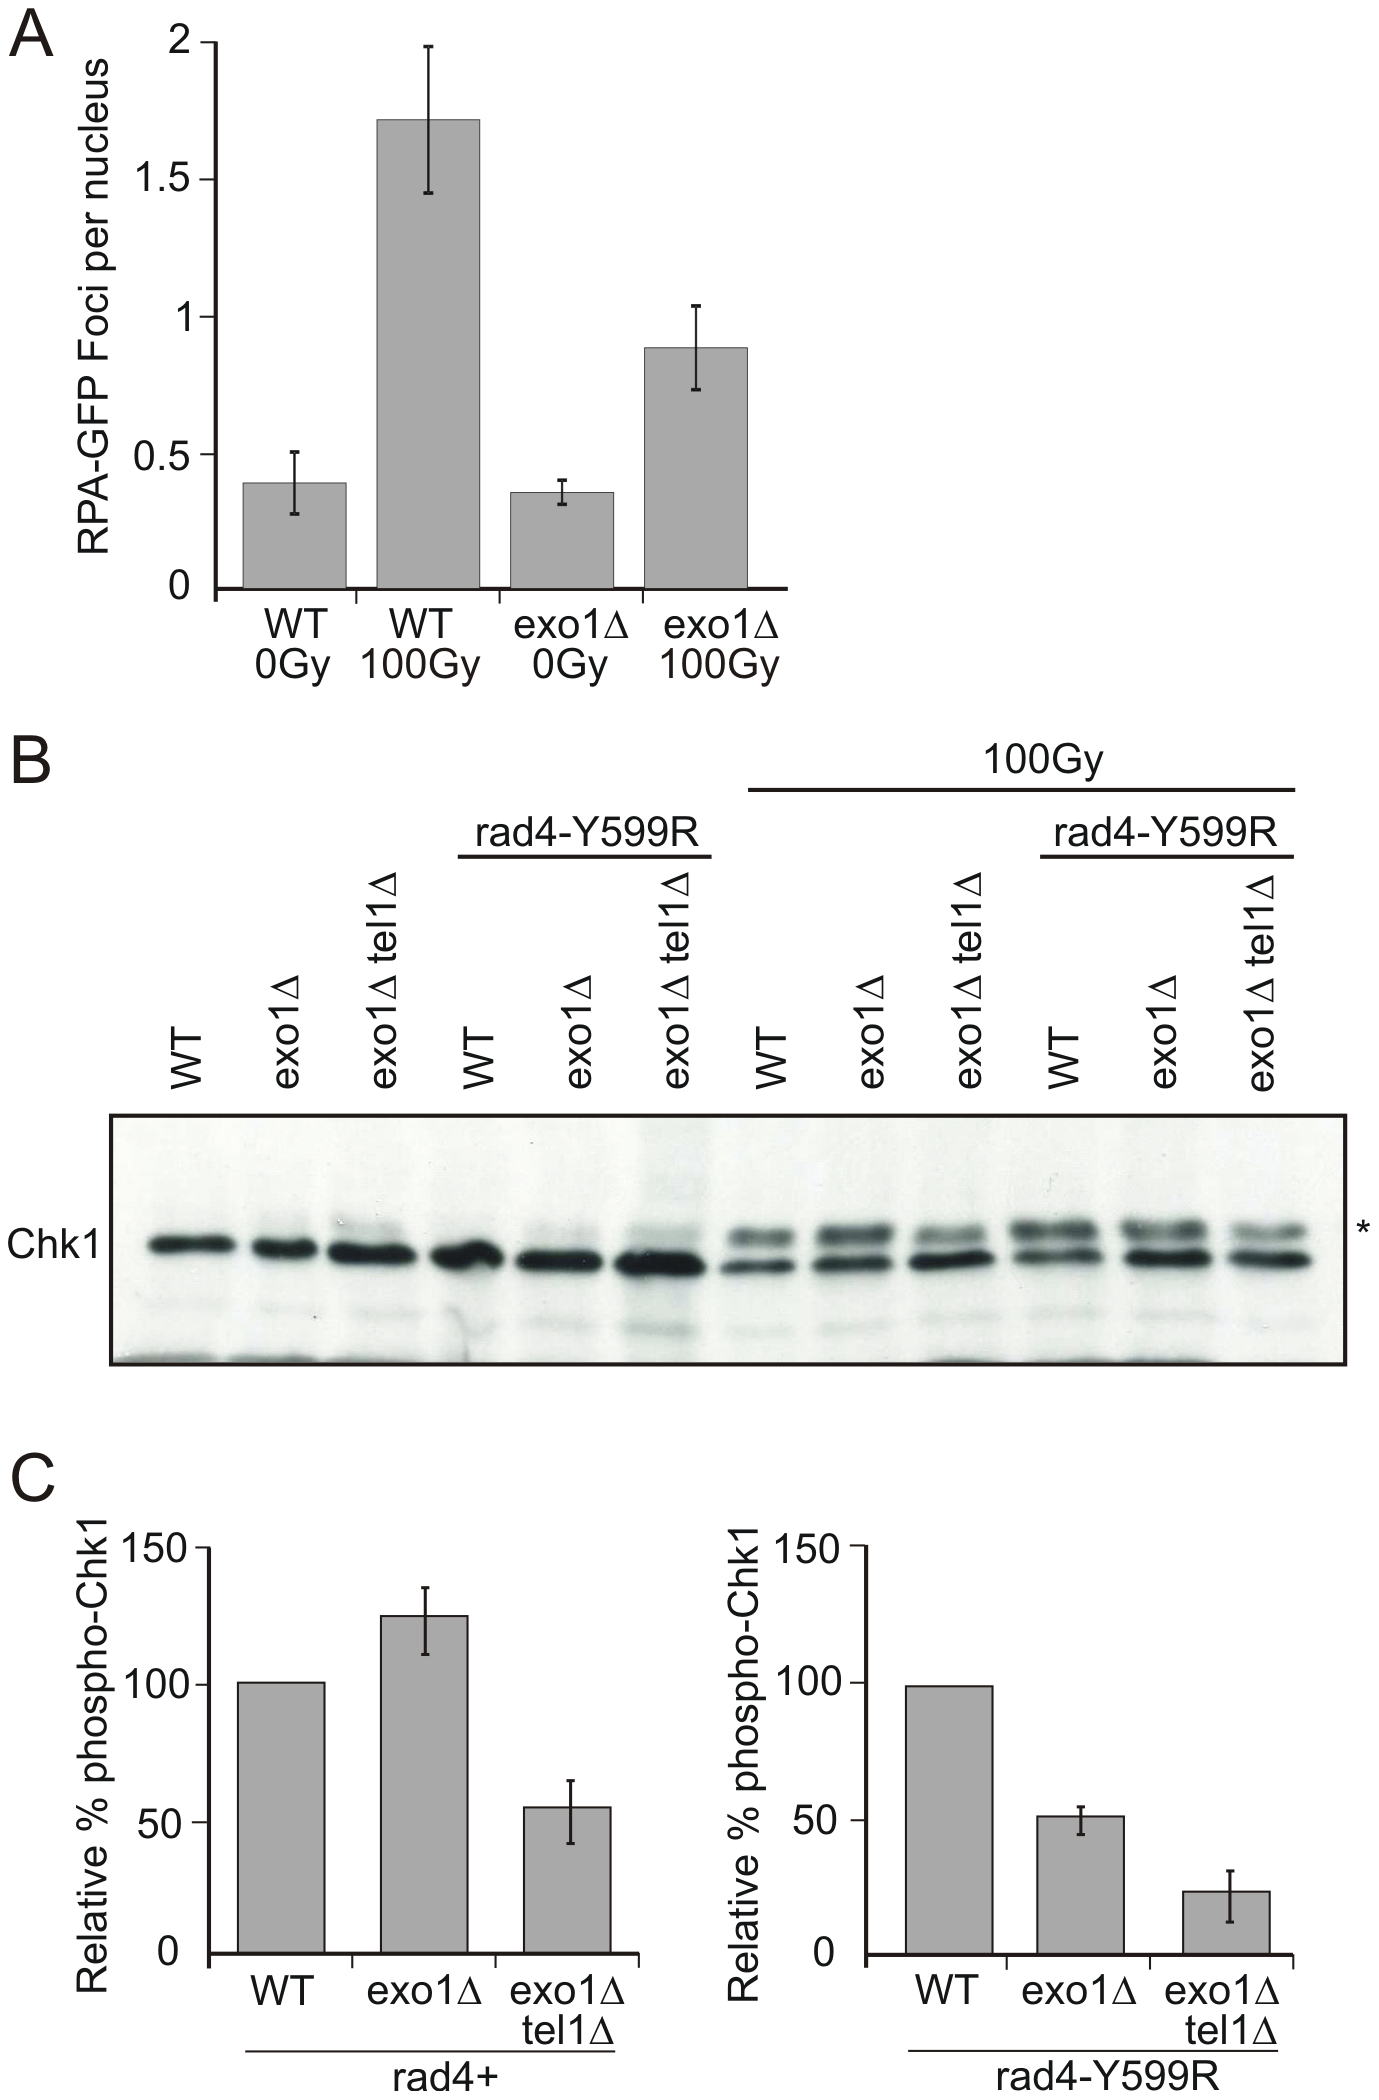 Chk1 phosphorylation is reduced in <i>rad4</i>-Y599R mutant cells when <i>exo1</i> is deleted.